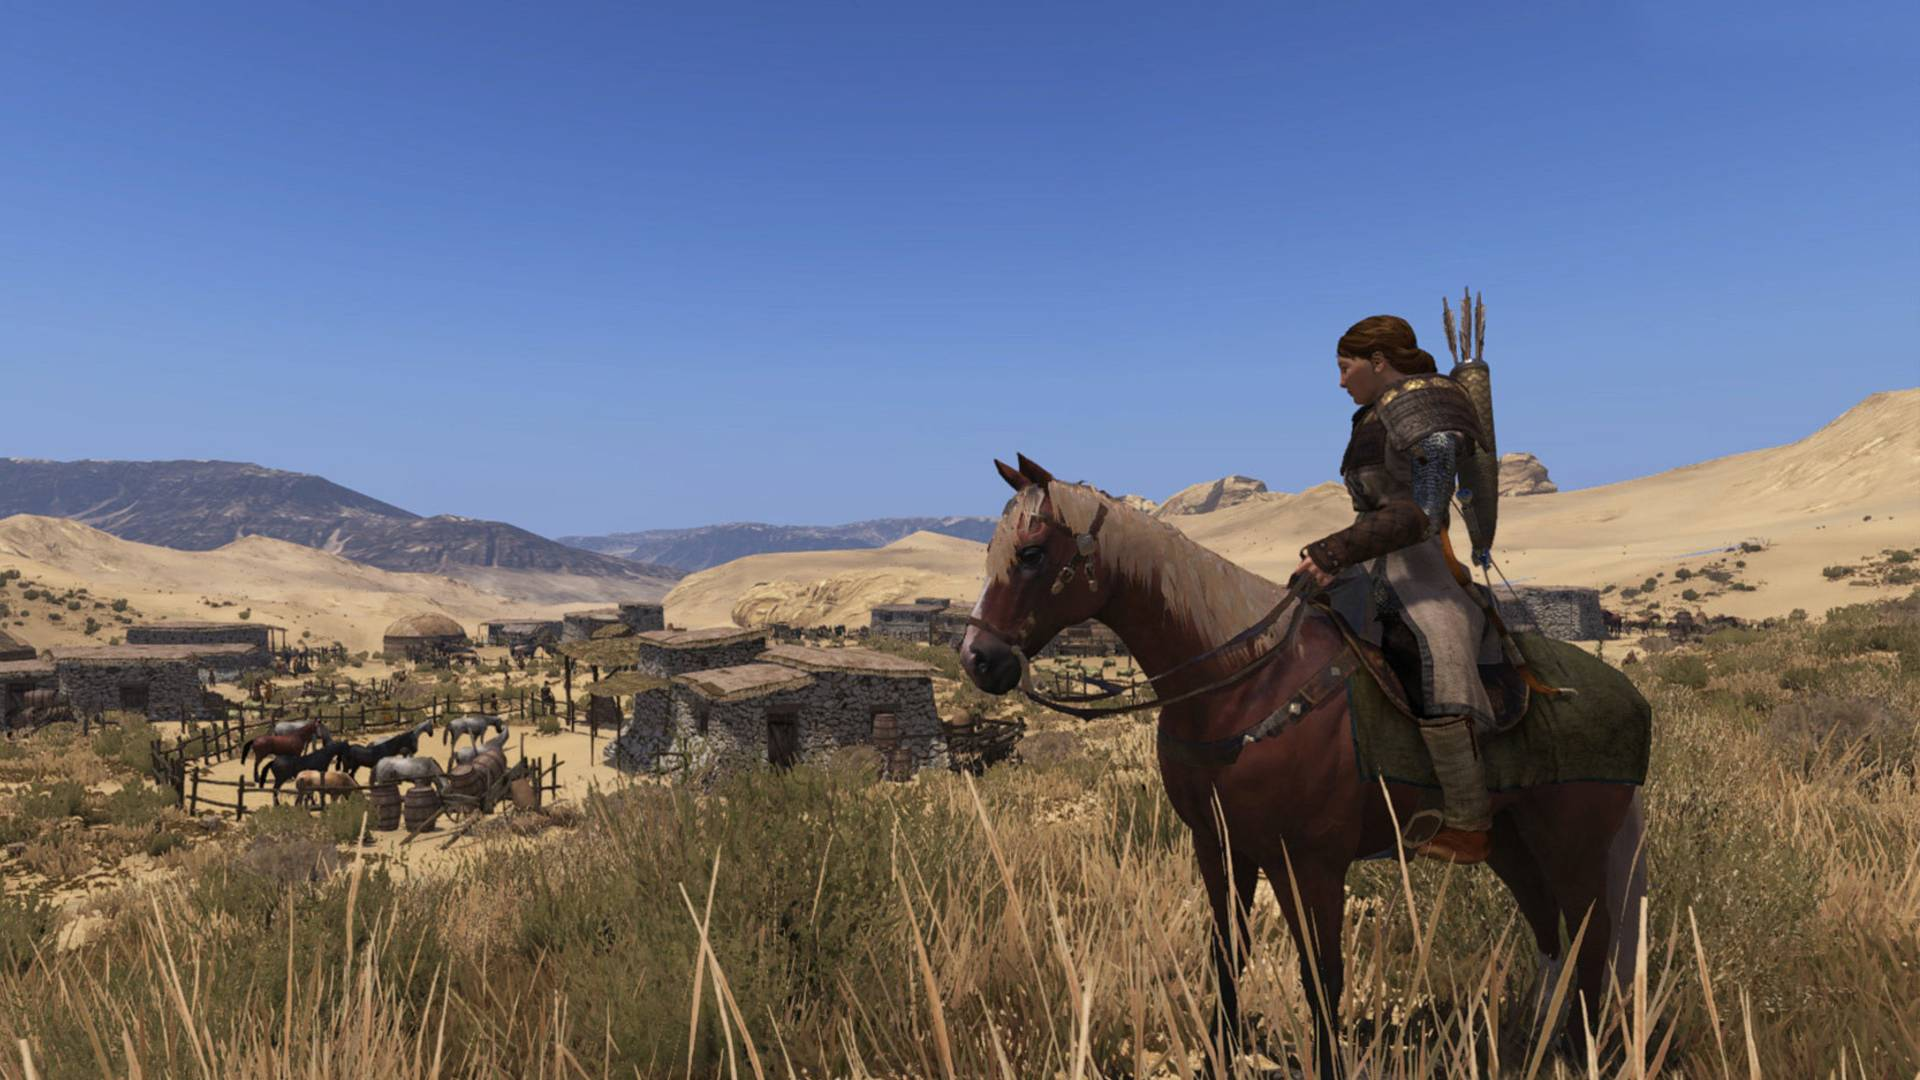 Mount & Blade II: Bannerlord caravans: how to get them up and running